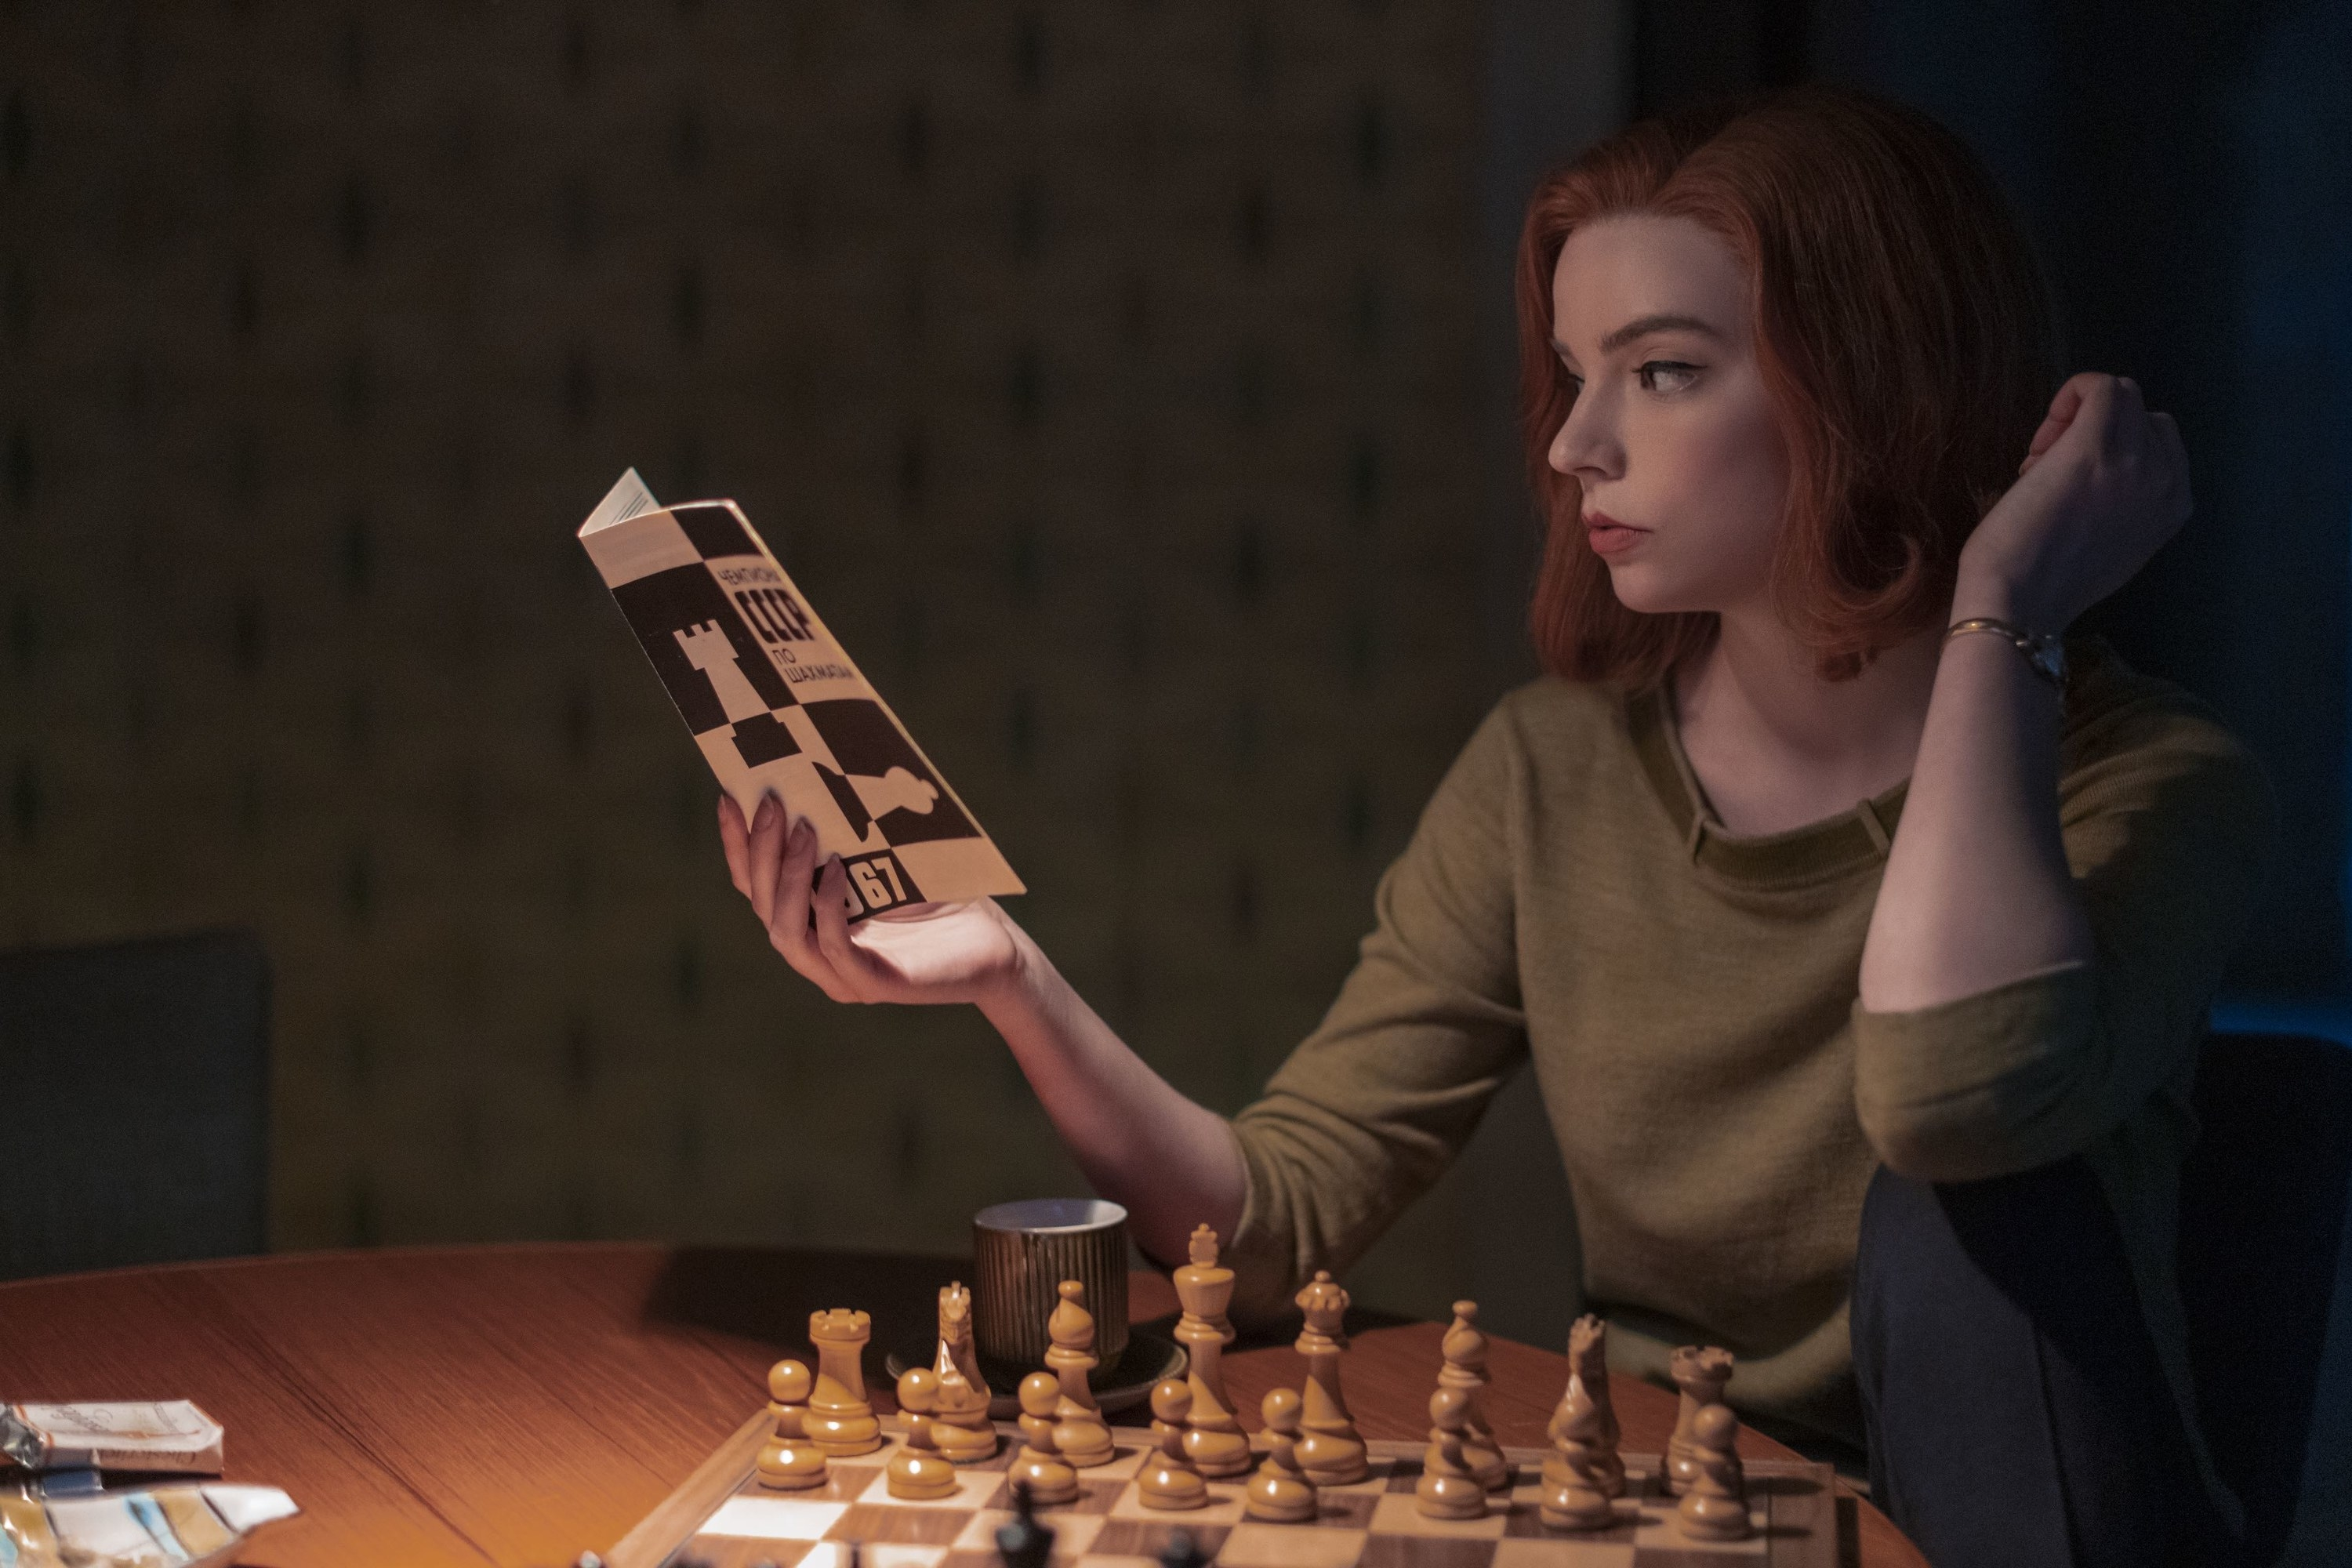 Beth reading a book while sitting in front of a chess set